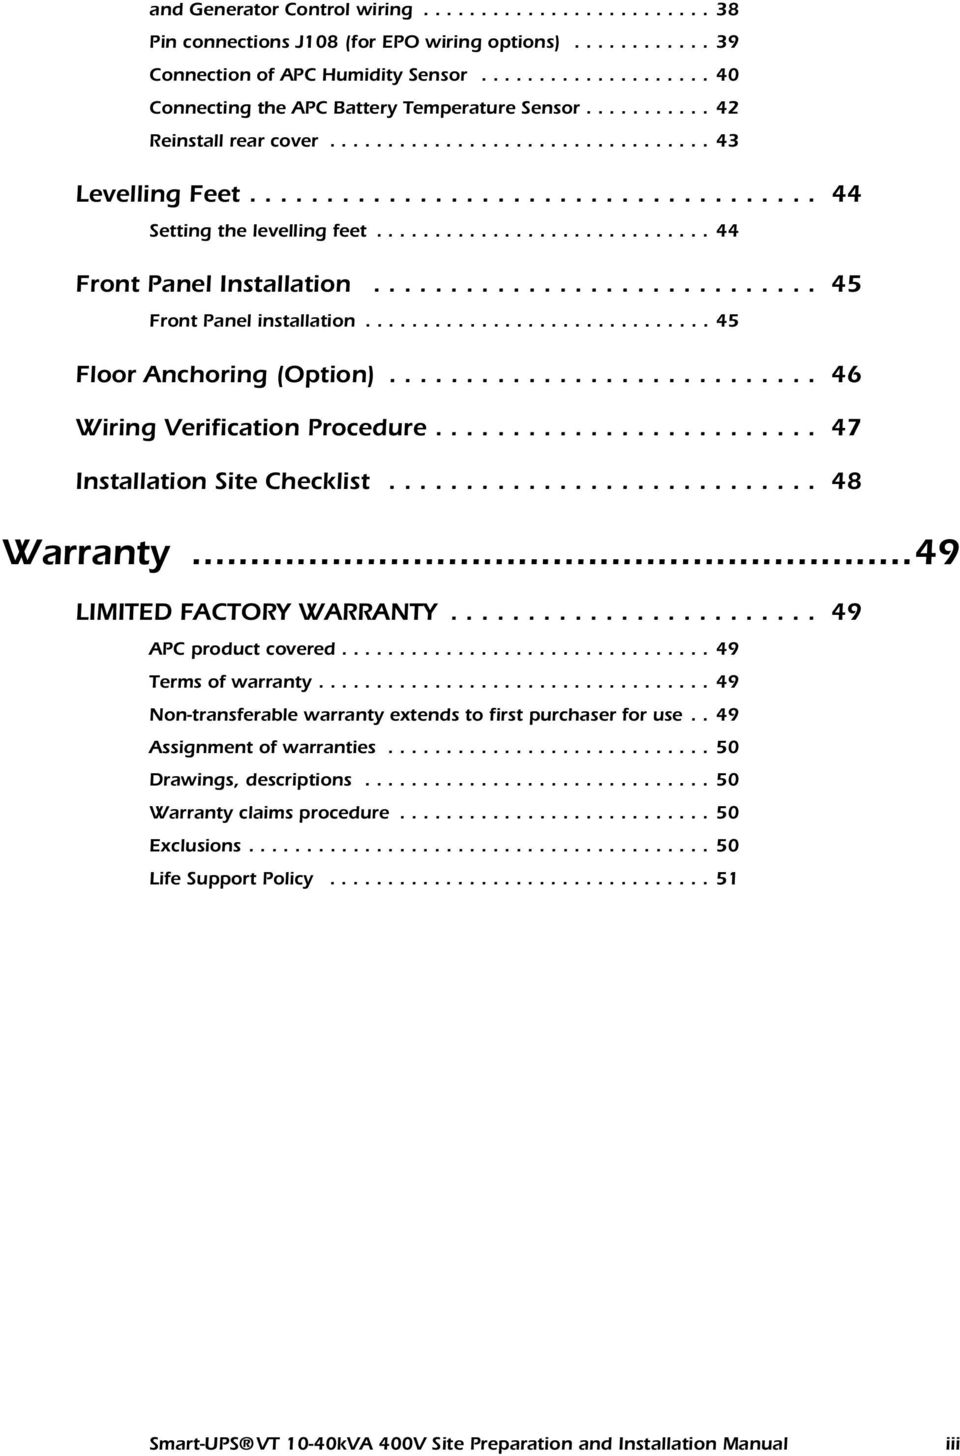 Smart Ups Vt Kva 400v Site Preparation And Installation Manual Pdf Apc 1500 Battery Wiring Diagram 8